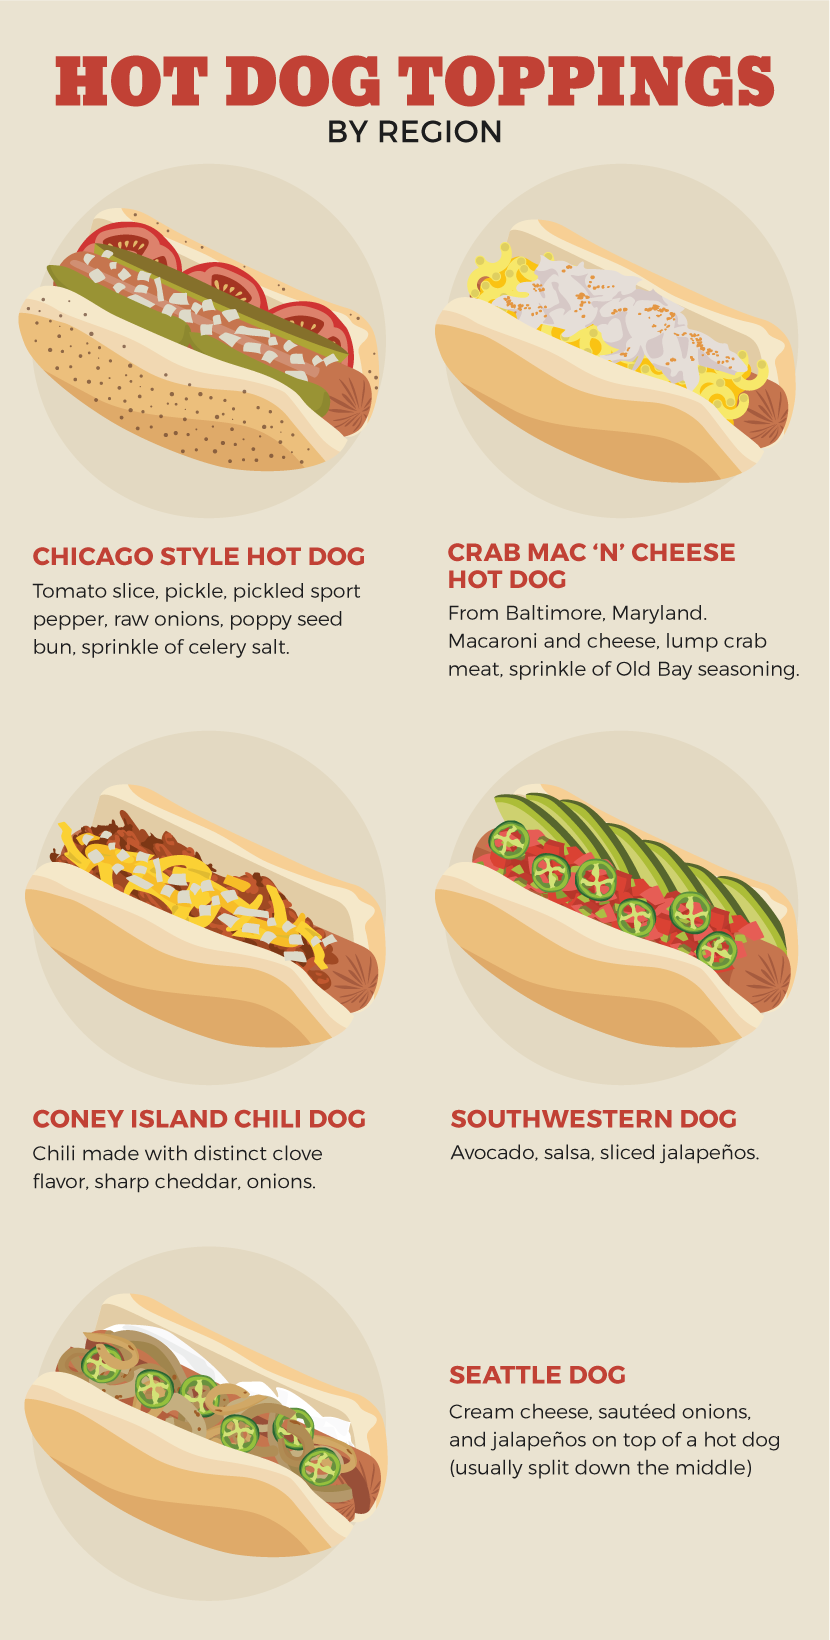 Hot Dog Toppings By Region - Gourmet Hot Dogs By Region